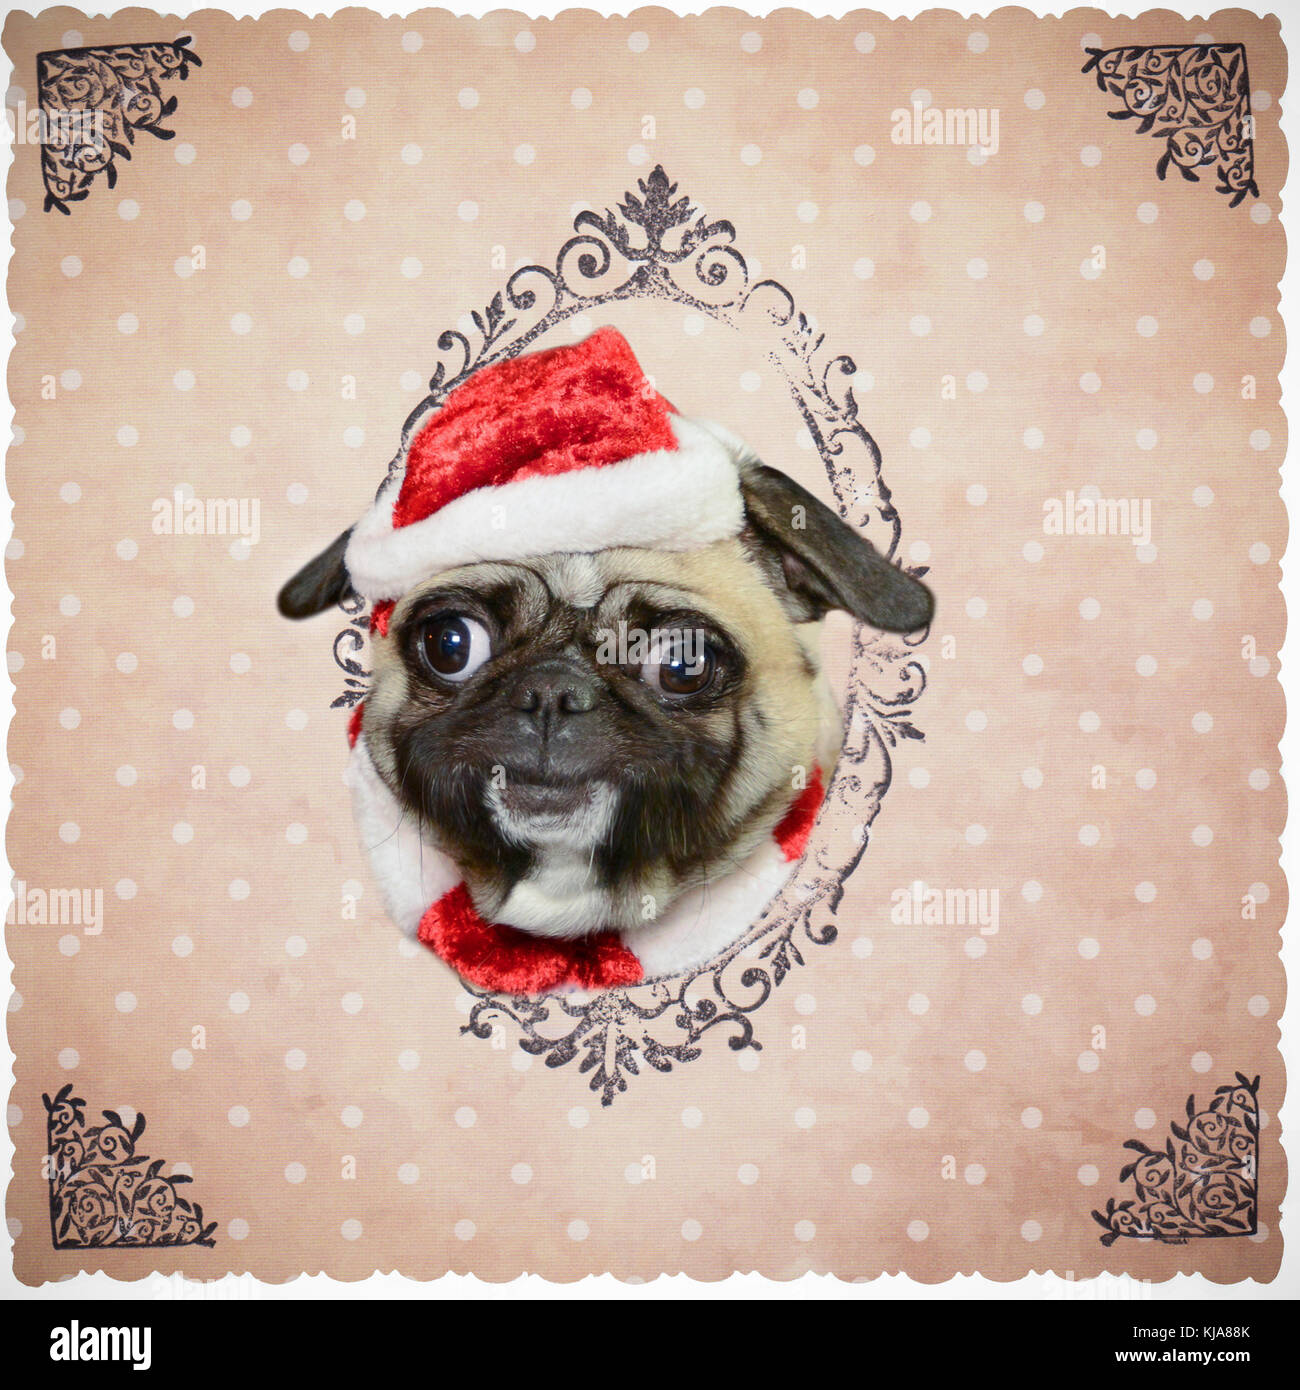 Dog pug with Christmas cap smiles and puts his head through paper  background - Stock Image